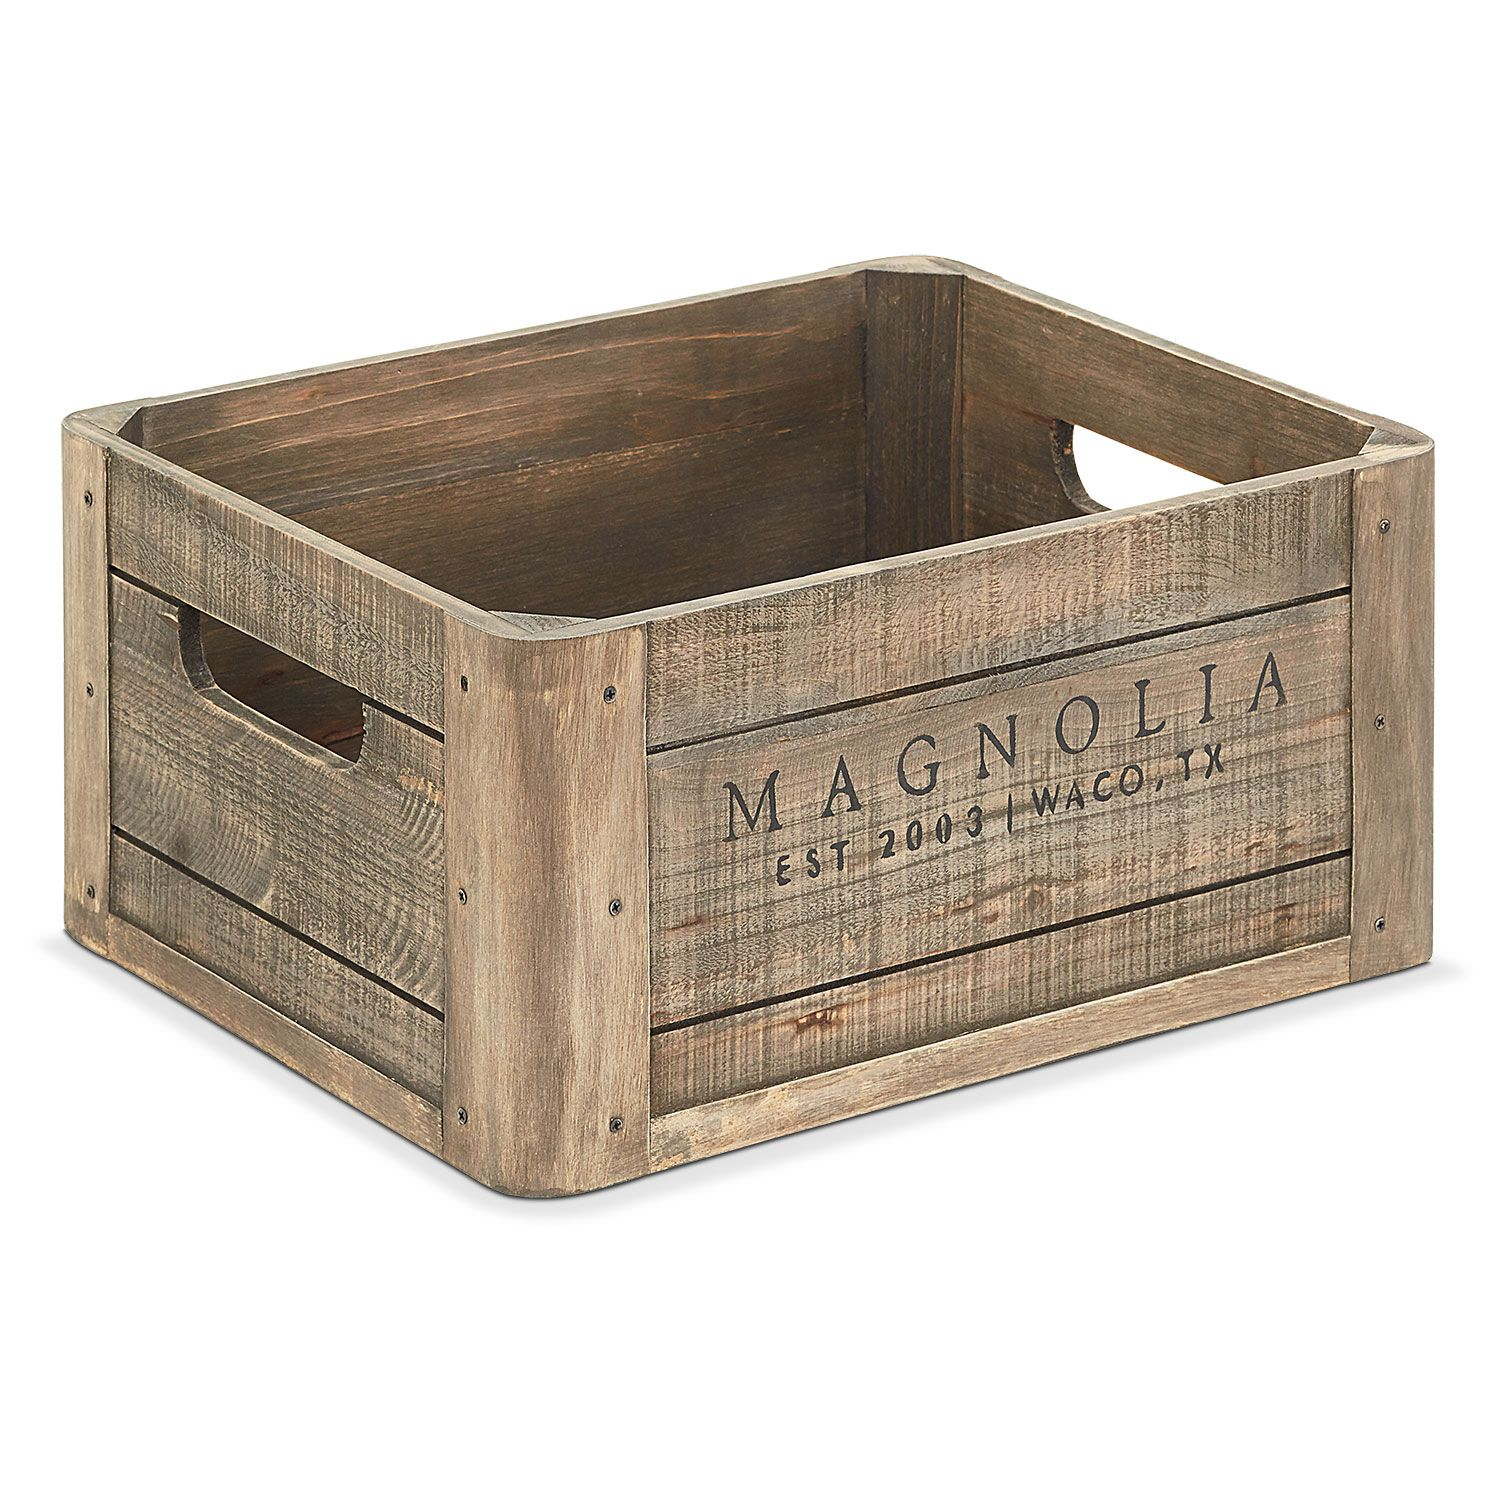 This Wood Crate With Magnolia Logo Is Inspired By The Crates From Days Gone By That Farmer Magnolia Homes Magnolia Home Decor Joanna Gaines Furniture